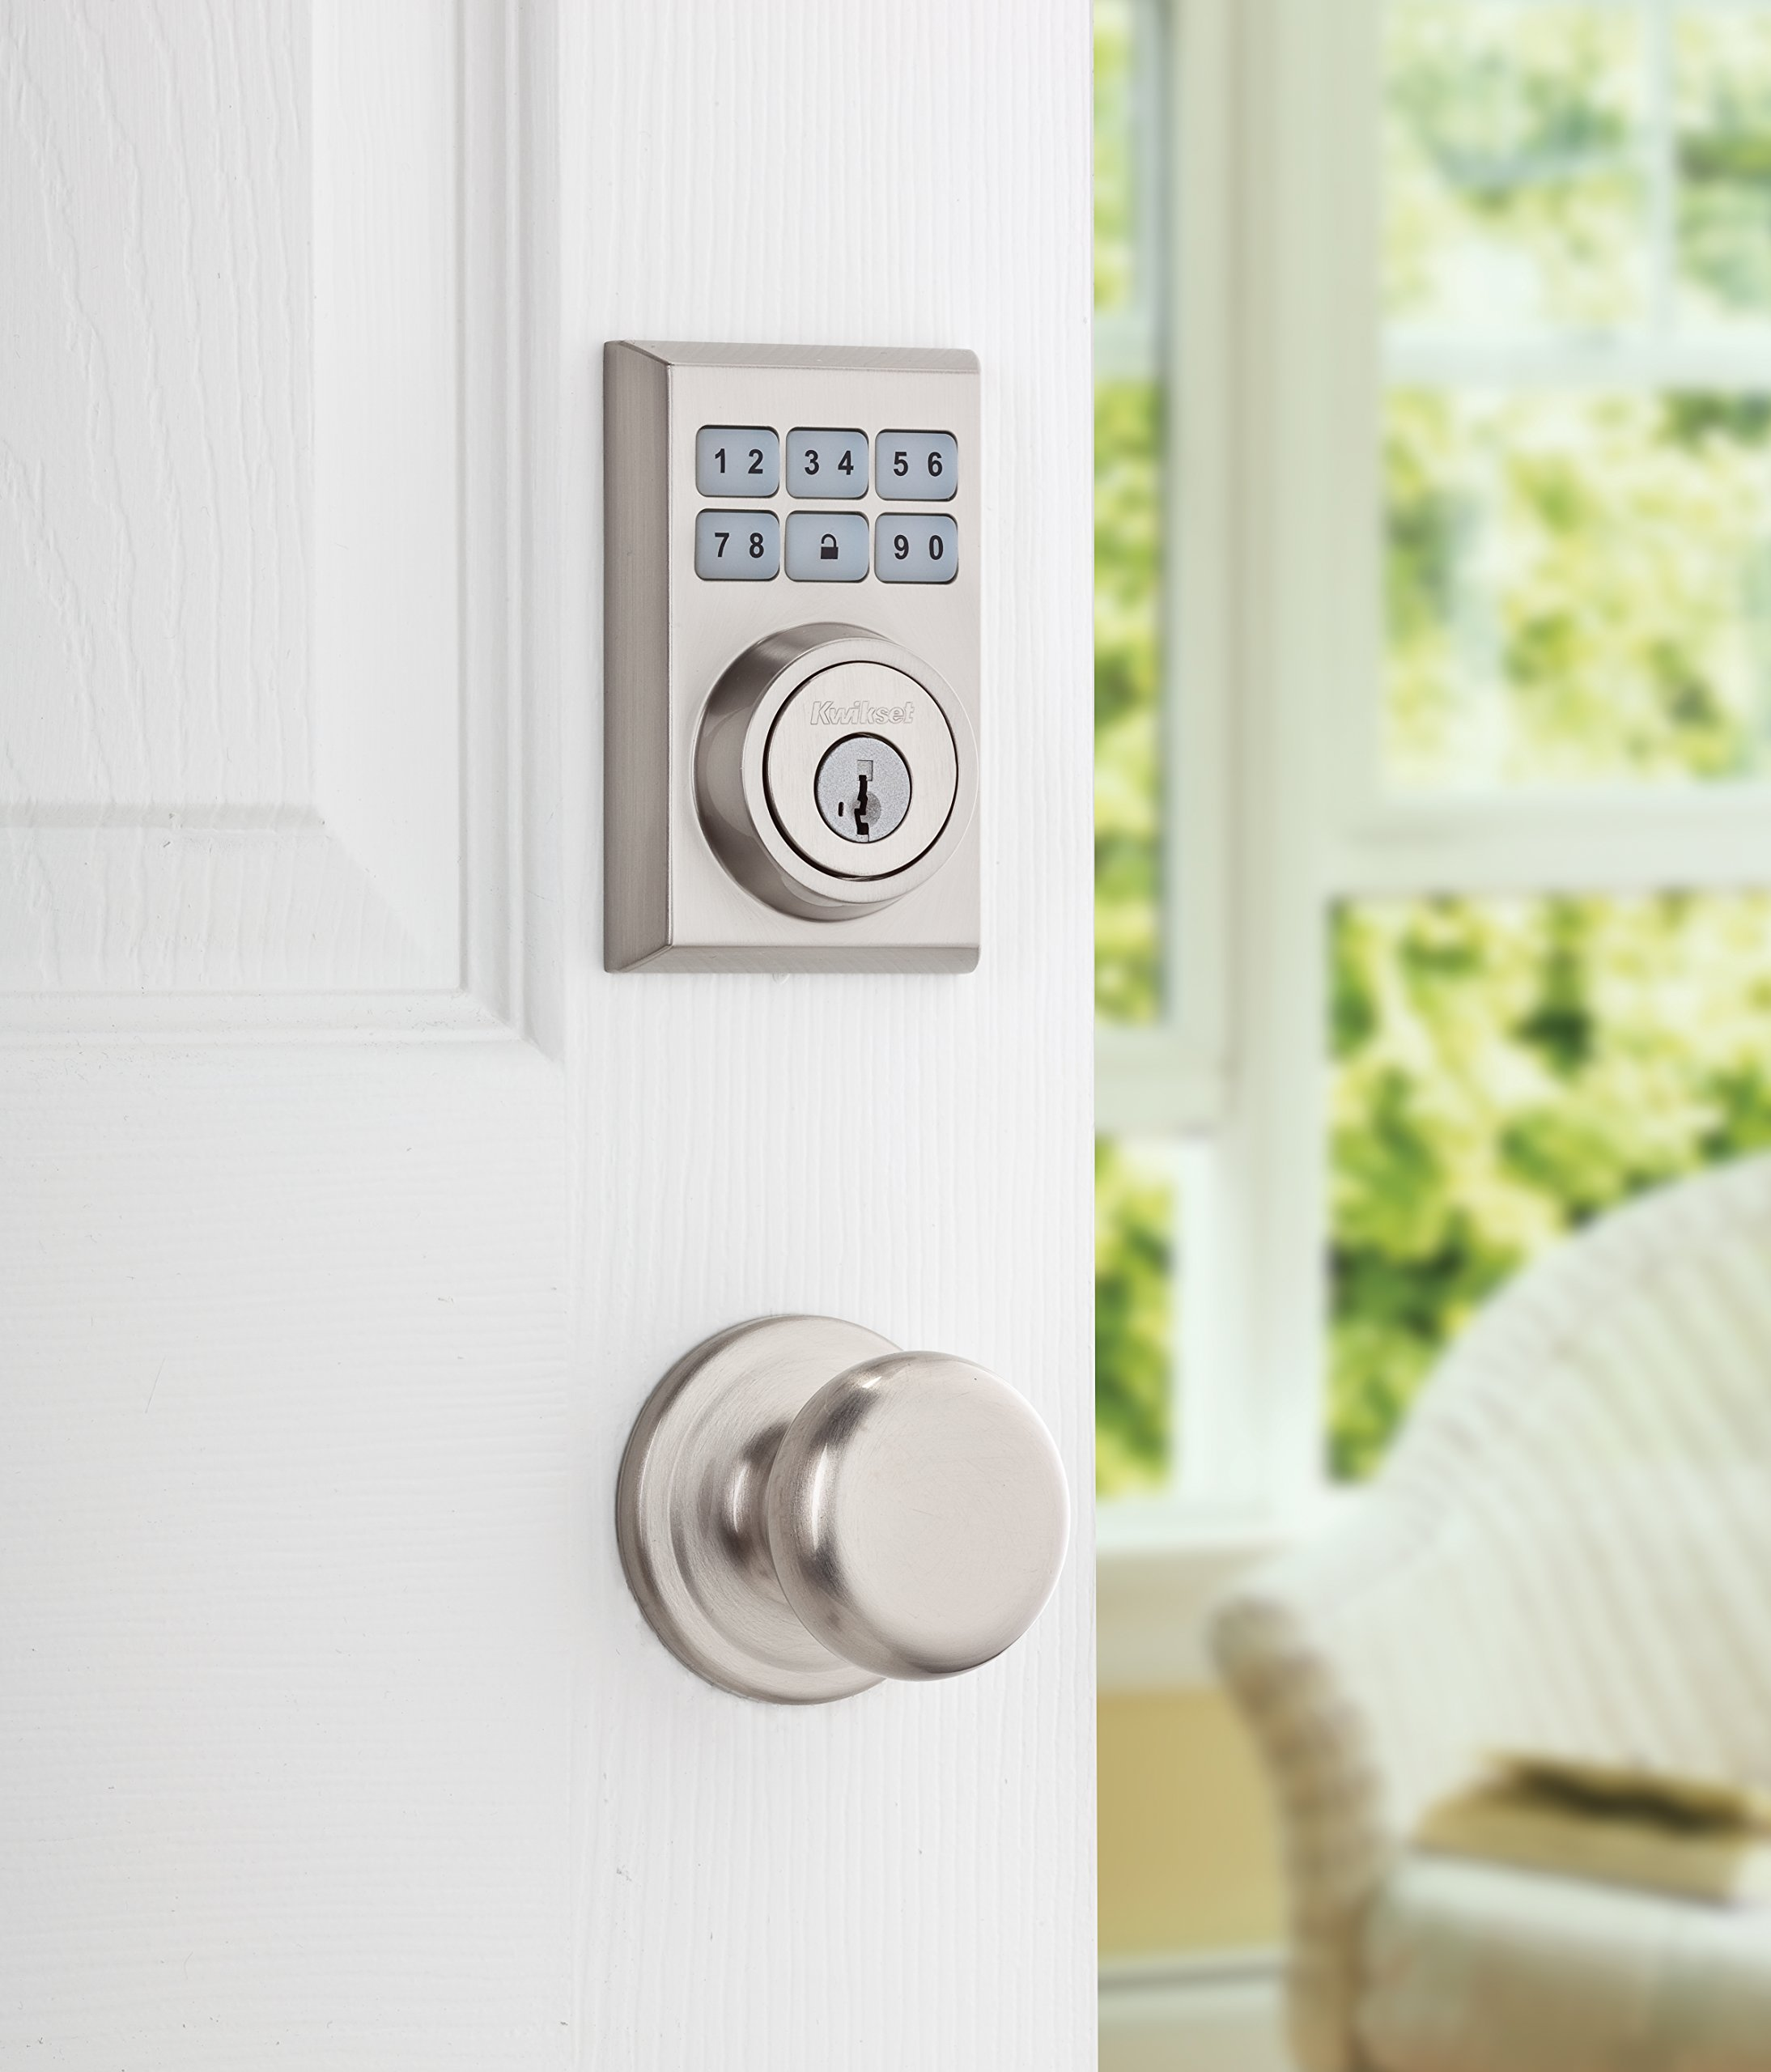 Kwikset 910 Z-Wave Contemporary SmartCode Electronic Touchpad Deadbolt, Works with Amazon Alexa via SmartThings or Wink, featuring SmartKey in Satin Nickel